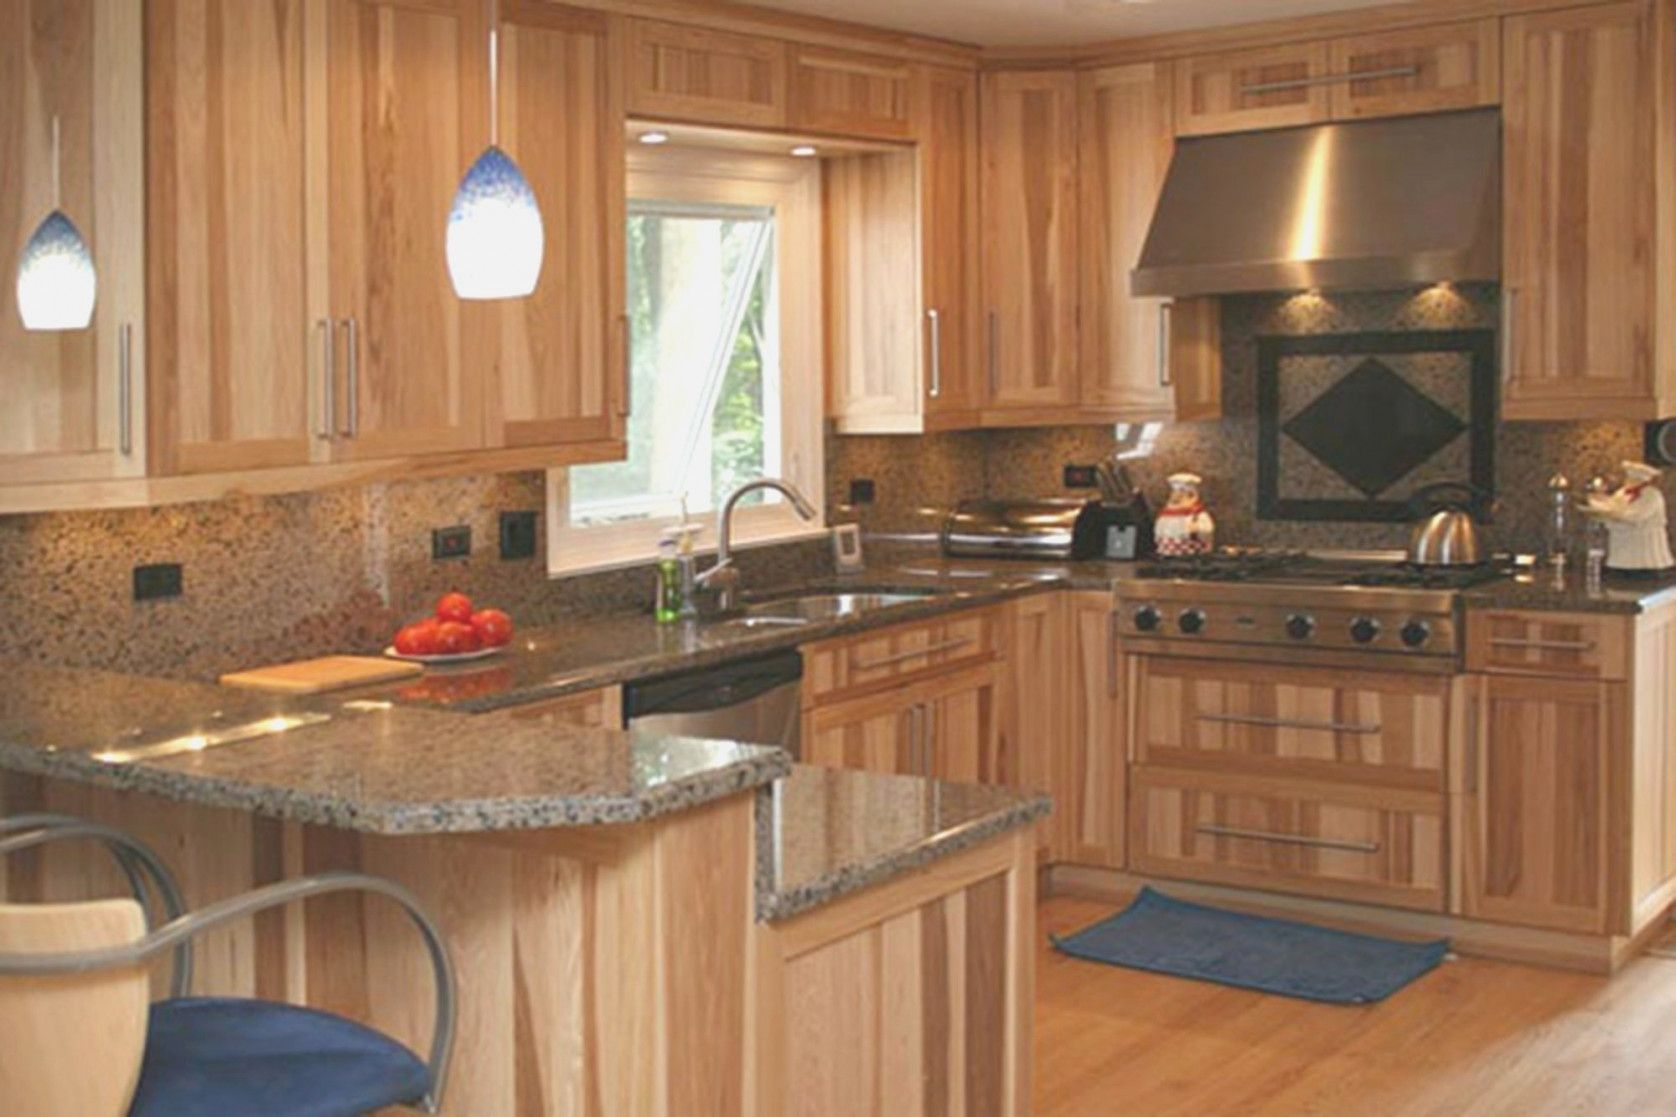 used kitchen cabinets atlanta ga used kitchen cabinets atlanta ga kitchen cabinets 8773